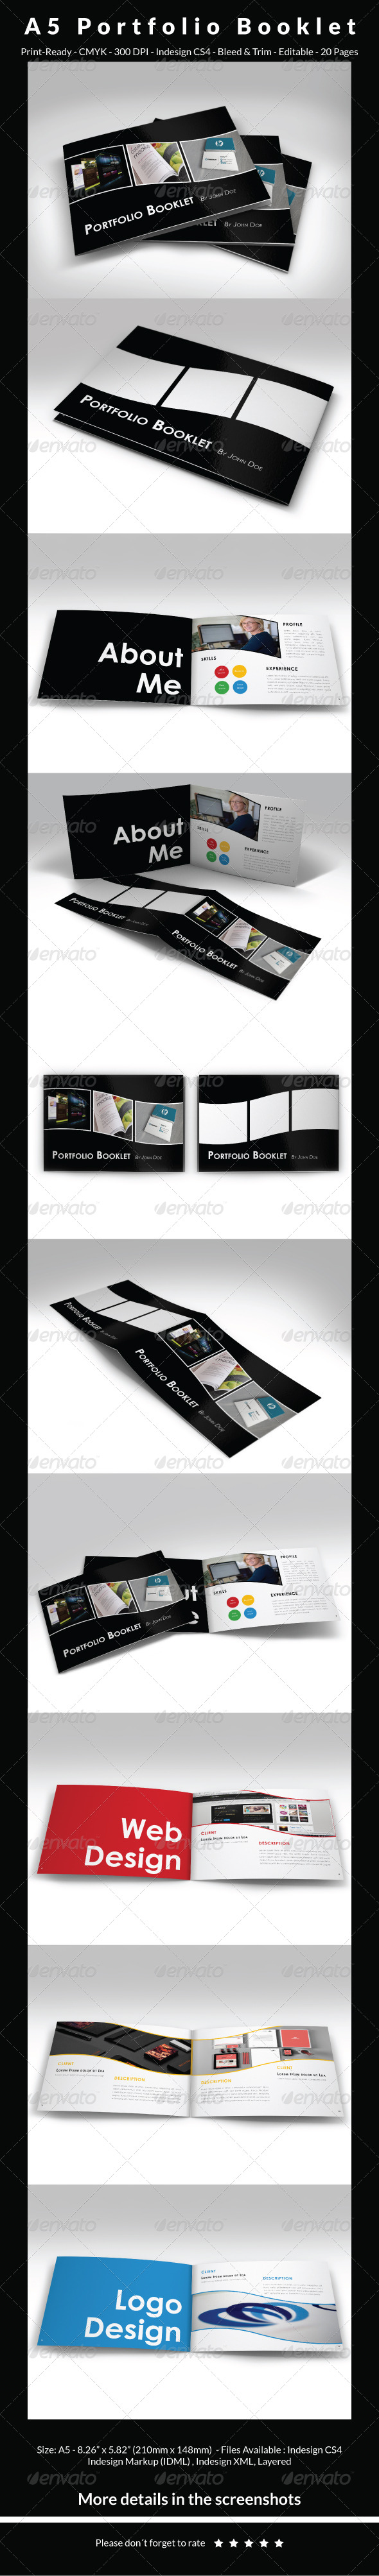 GraphicRiver A5 Portfolio Booklet 6786358